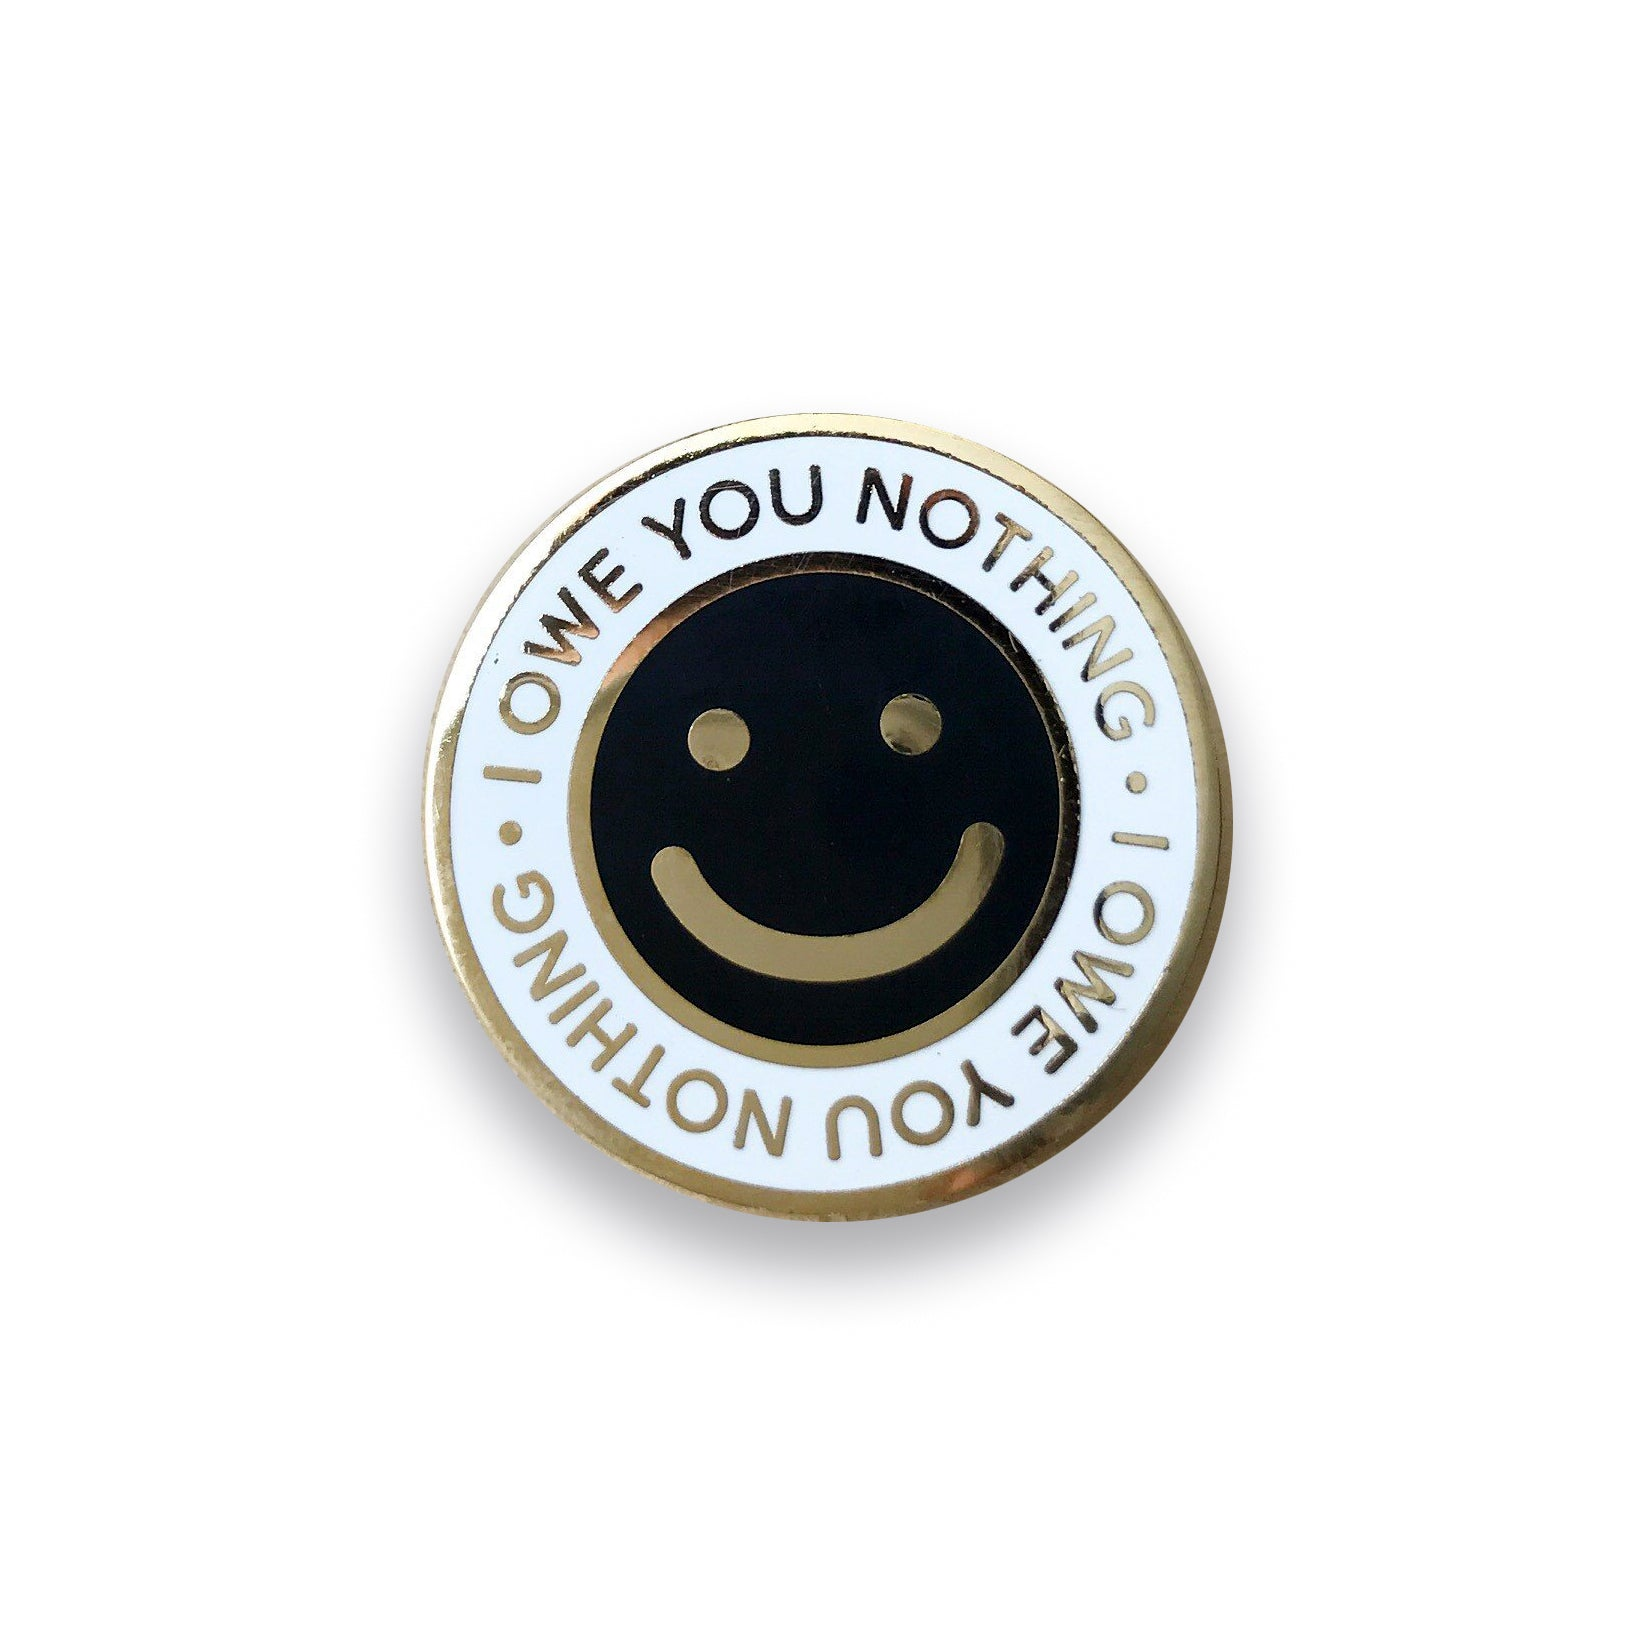 I Owe You Nothing Lapel Pin, Pins, - Sad Truth Supply - Enamel Pins